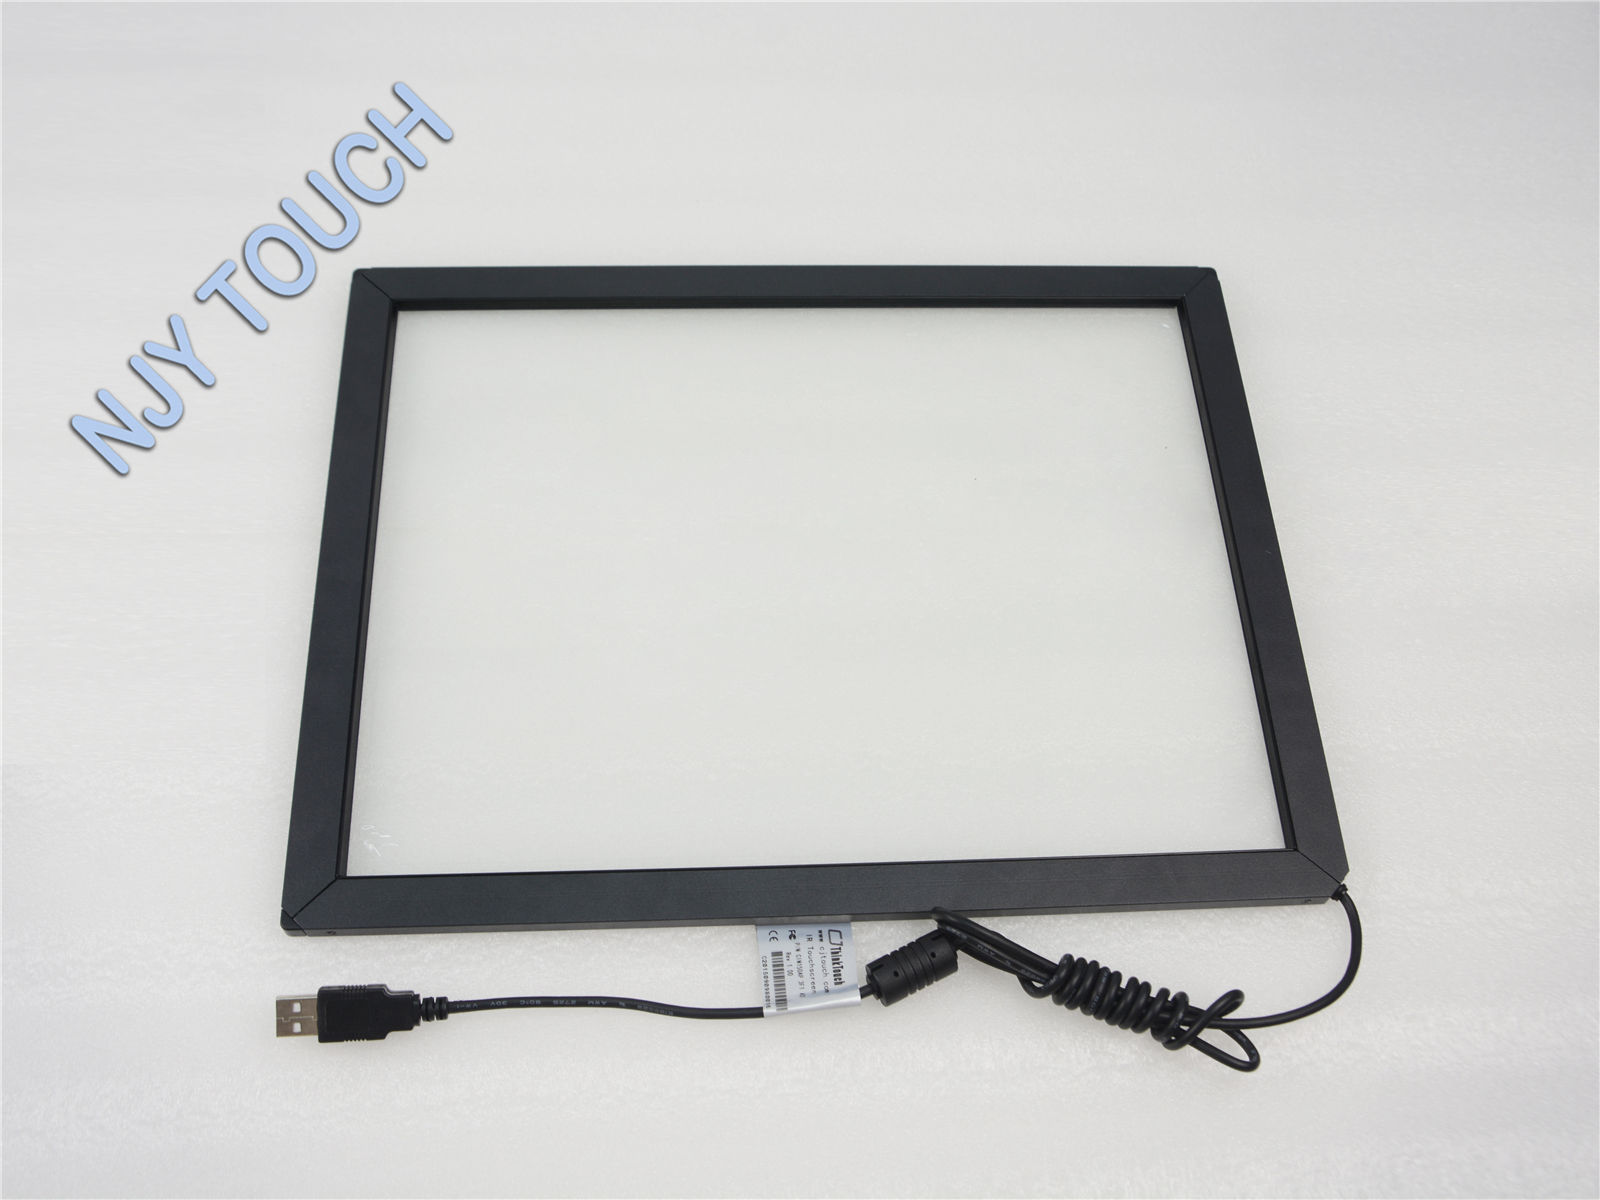 18.5 Inch Infrared Touch Screen Panel Frame USB Win 7 8 Drive Kit 2 point